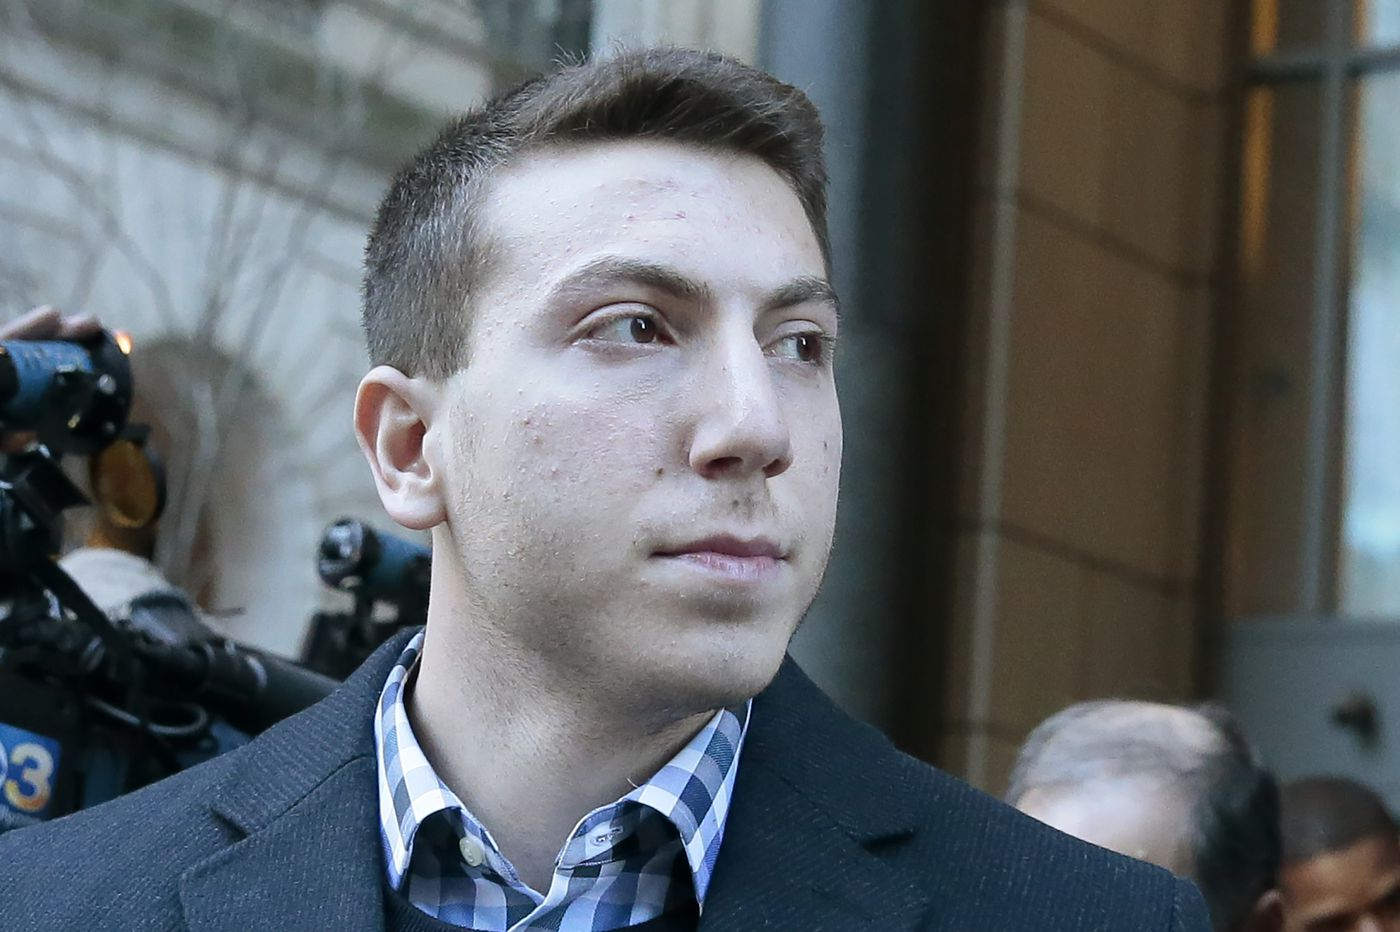 Ex-Temple frat president Ari Goldstein is found guilty of attempted sexual assault in one case, cleared in another